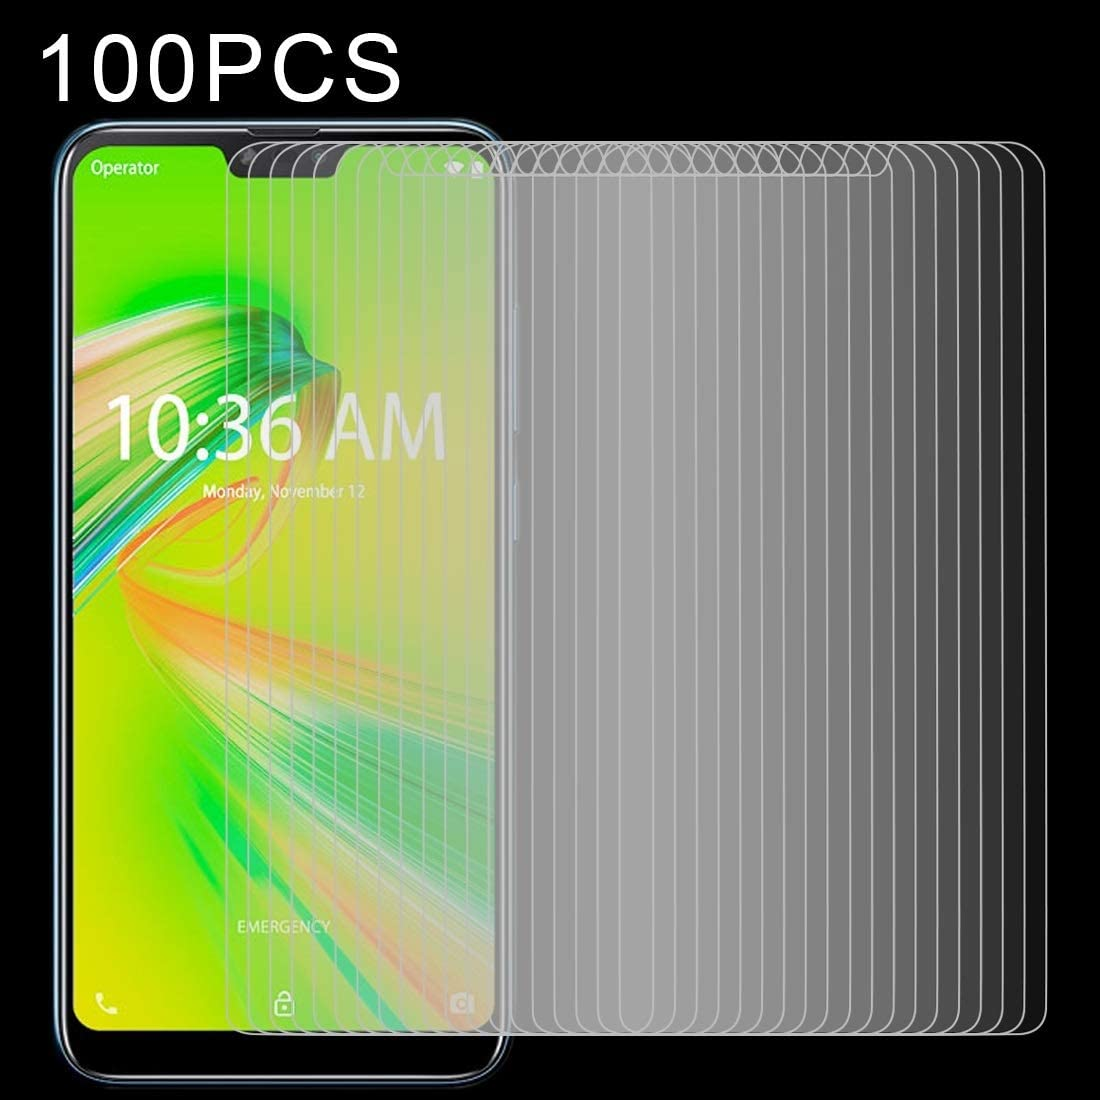 CAIFENG Tempered Glass Film Screen Protector 100 PCS 0.26mm 9H 2.5D Tempered Glass Film for Sony Xperia 10 Anti-Scratch